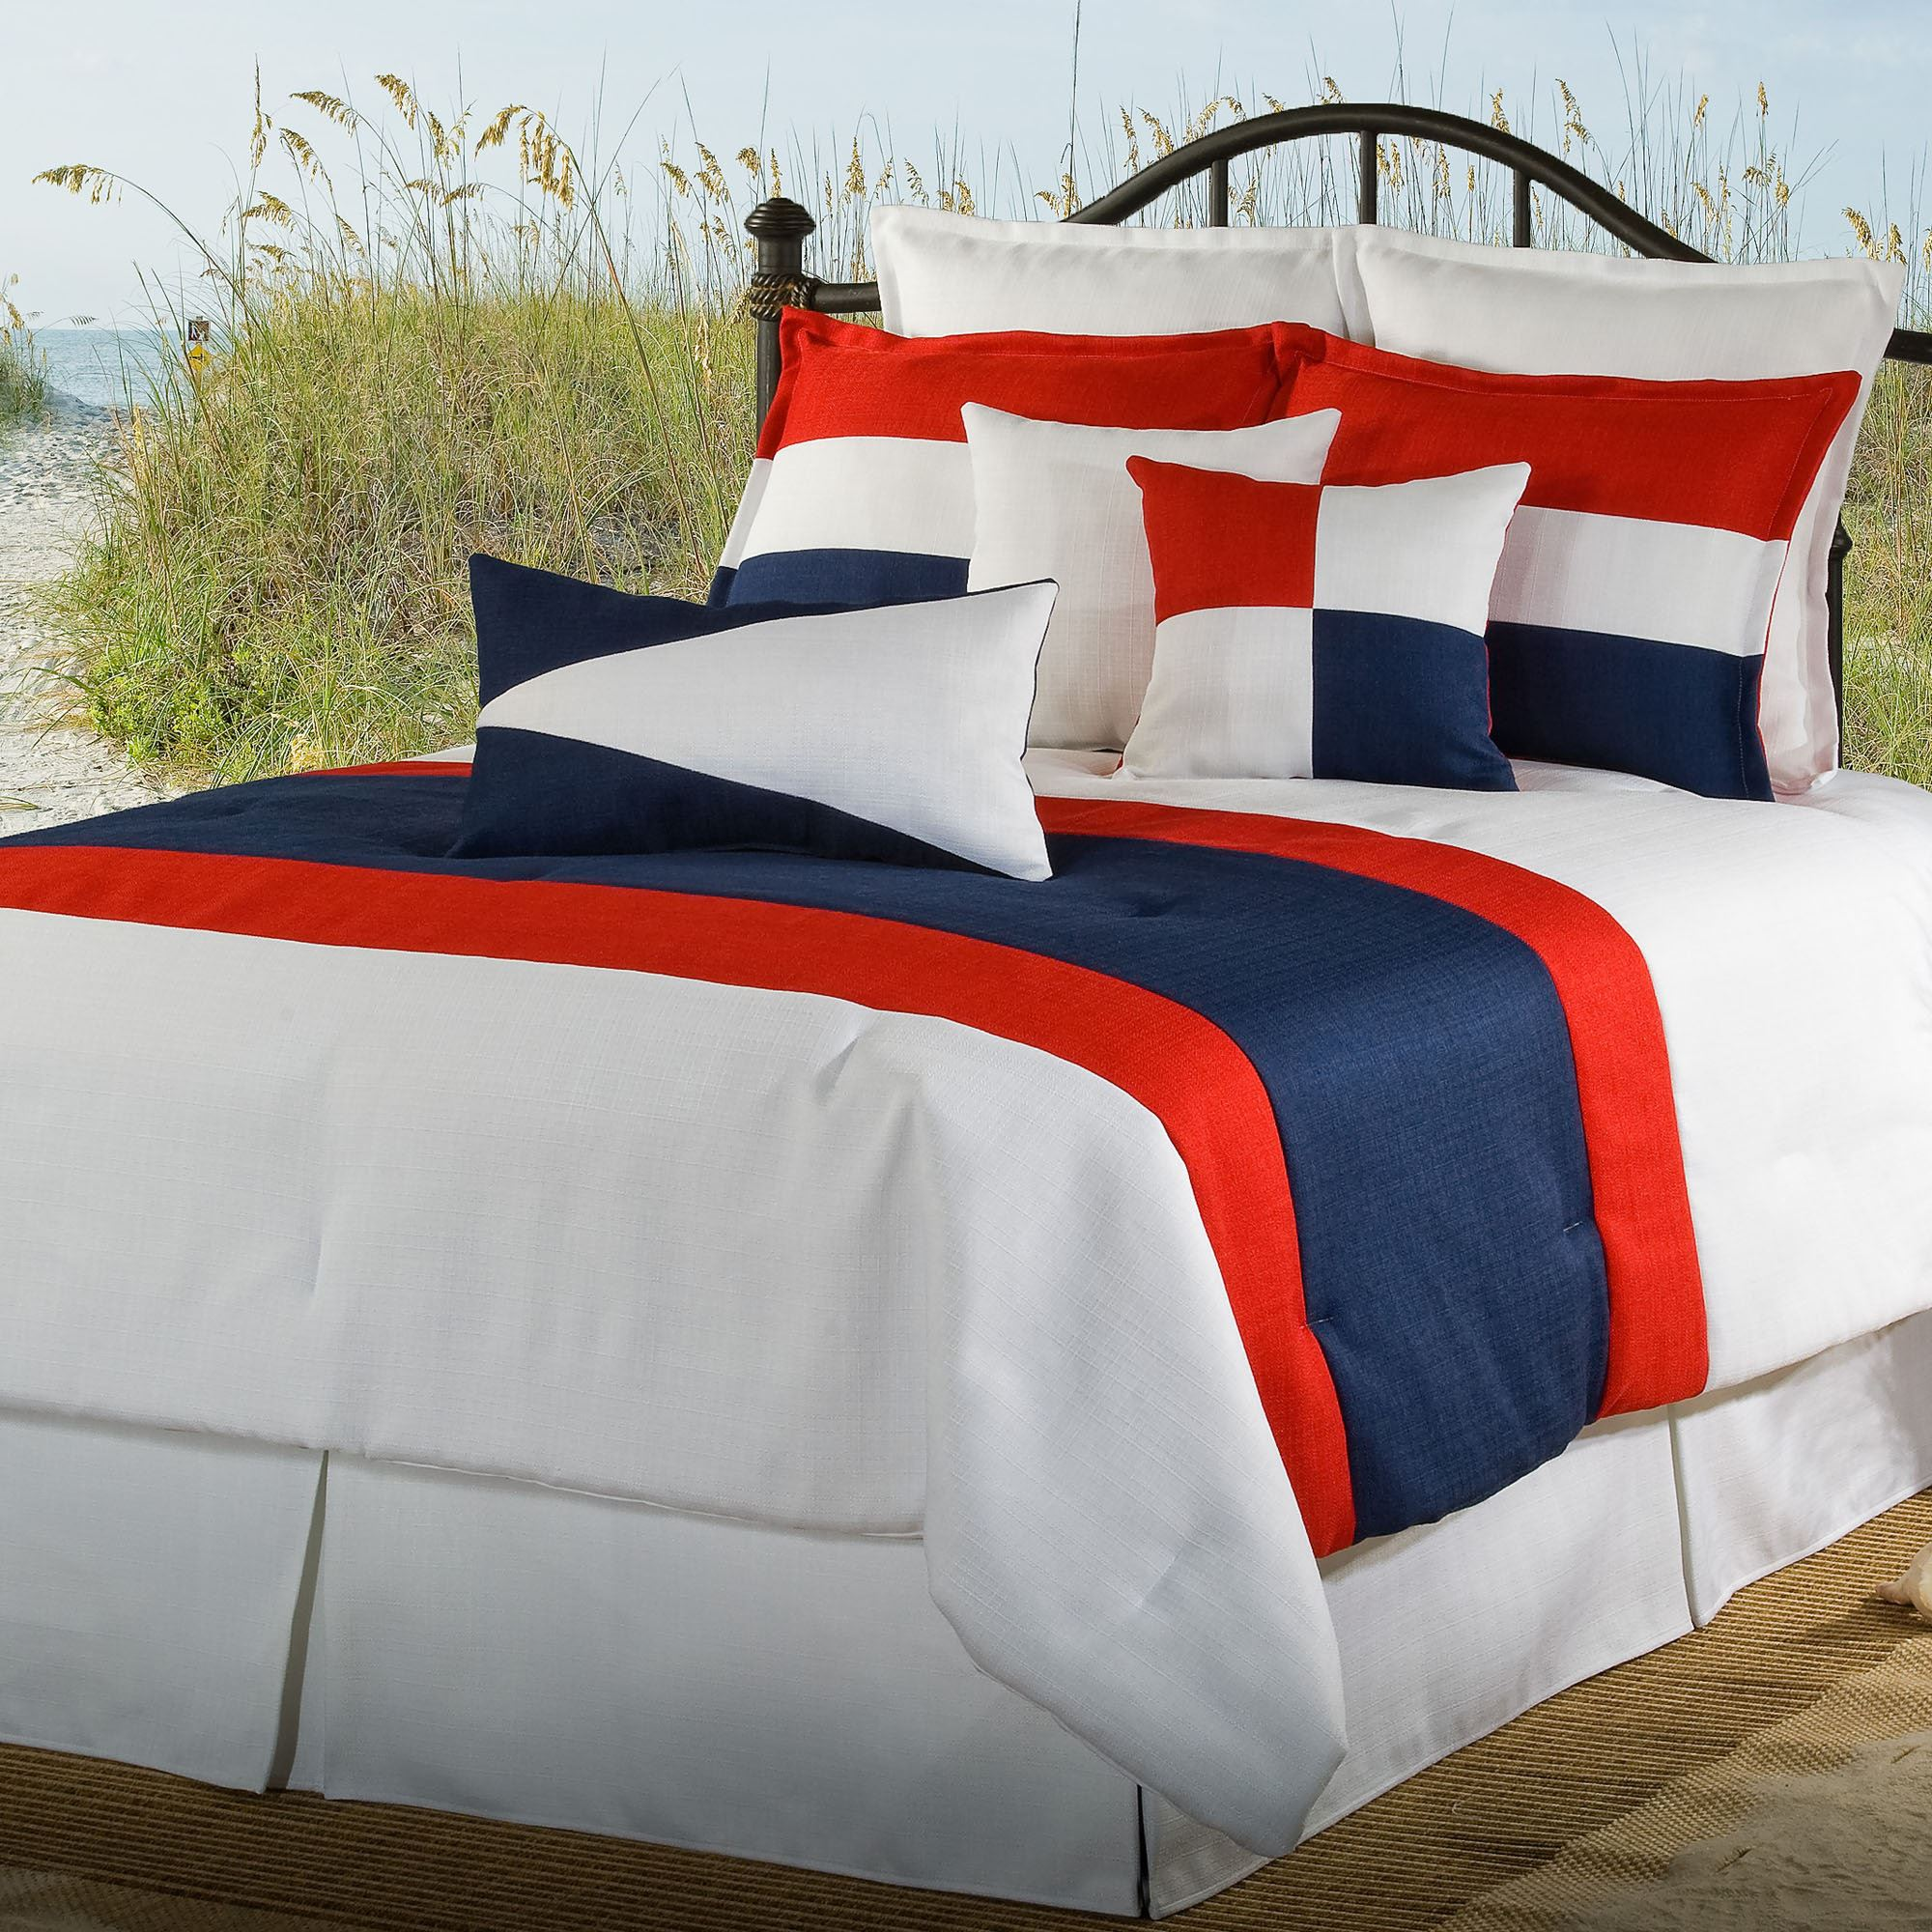 collection come by the our sets nautical pin to embellished textiles discount set latest addition comforter colonial checkout home